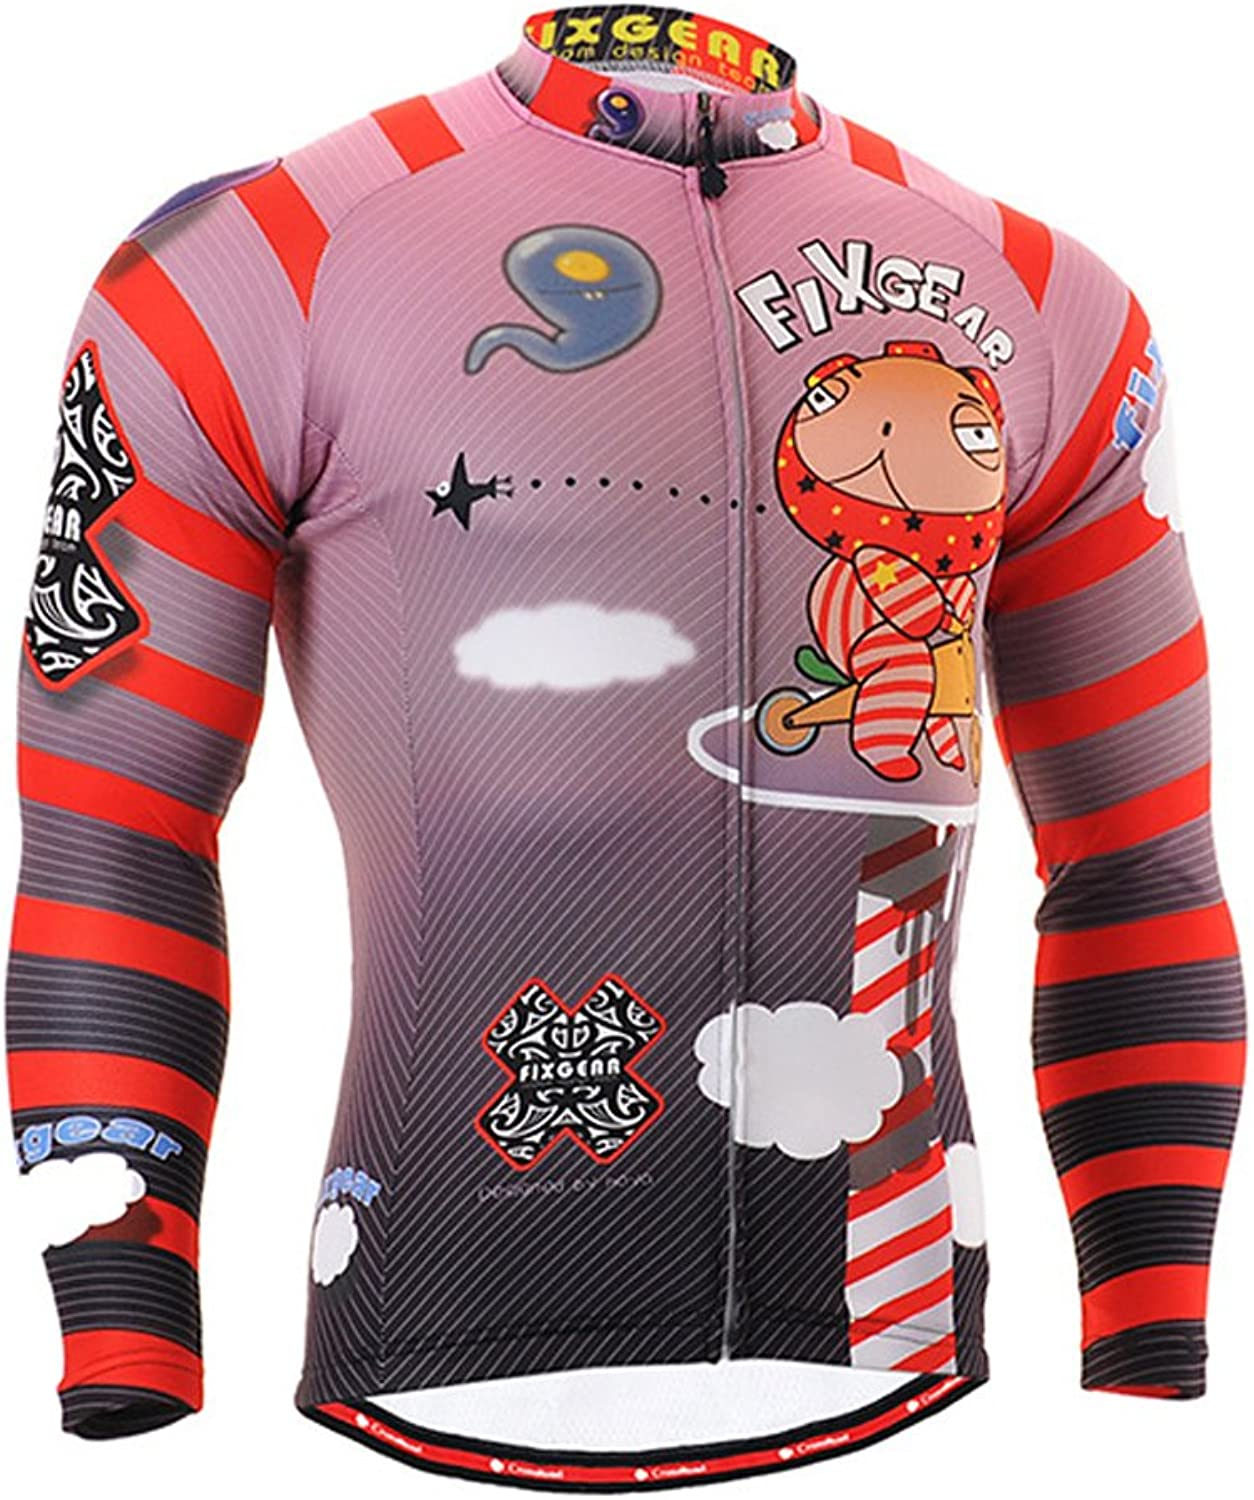 Cycling MTB Motorcycle Workout Compression Sportwear Jersey Top Zipper Y102 L